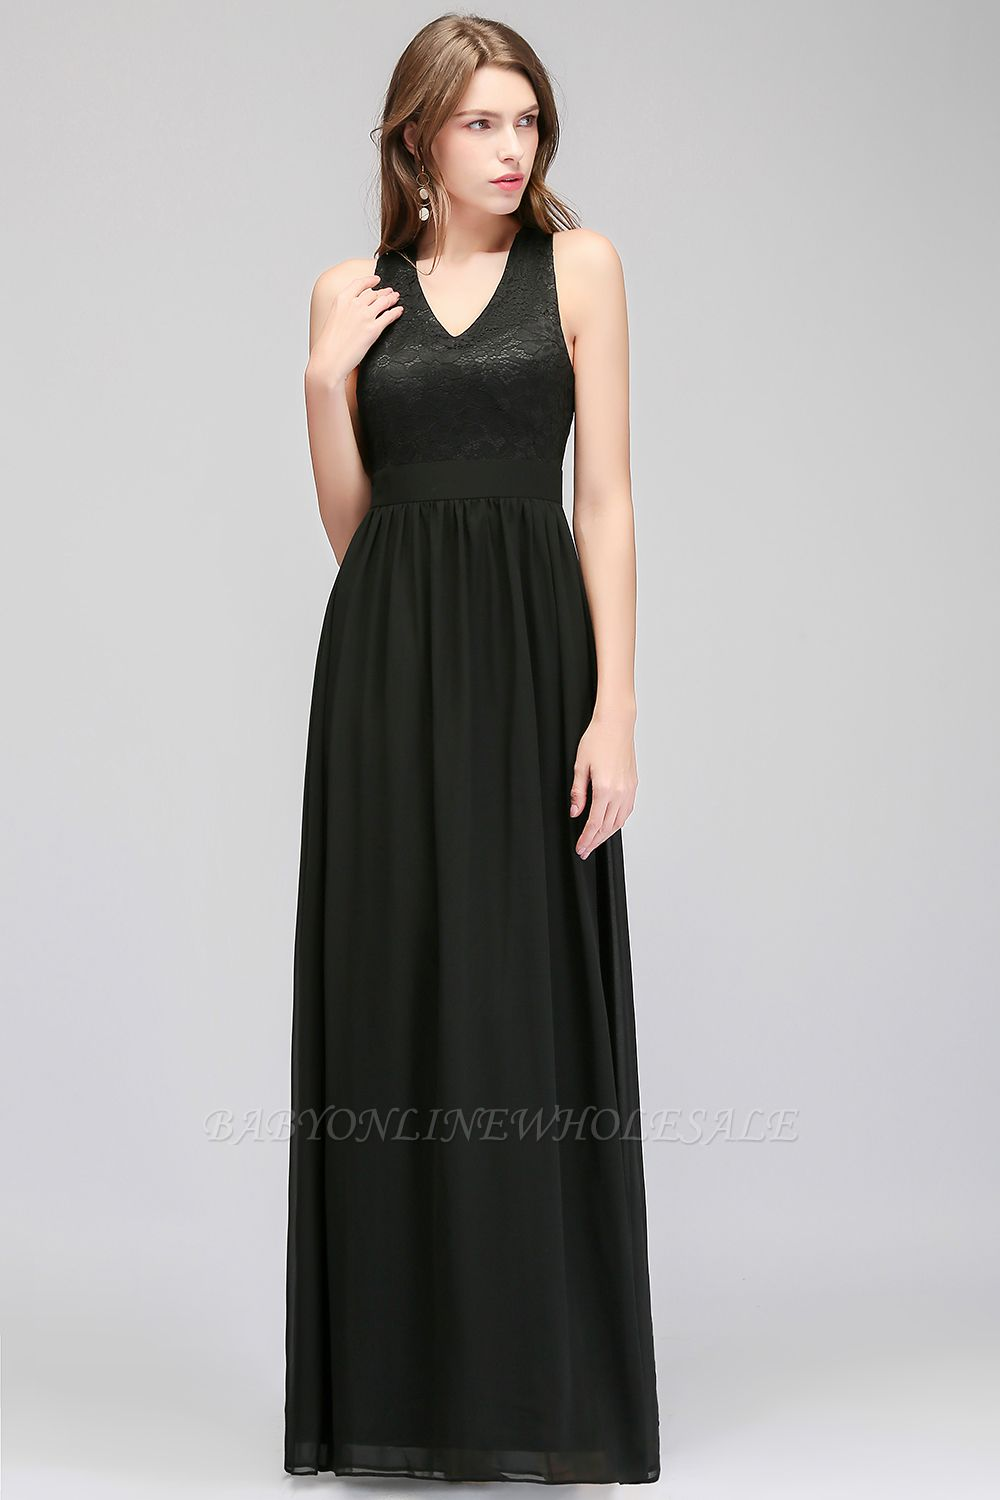 MAGGIE | A-line V-neck Floor Length Sleeveless Lace Top Black Bridesmaid Dresses